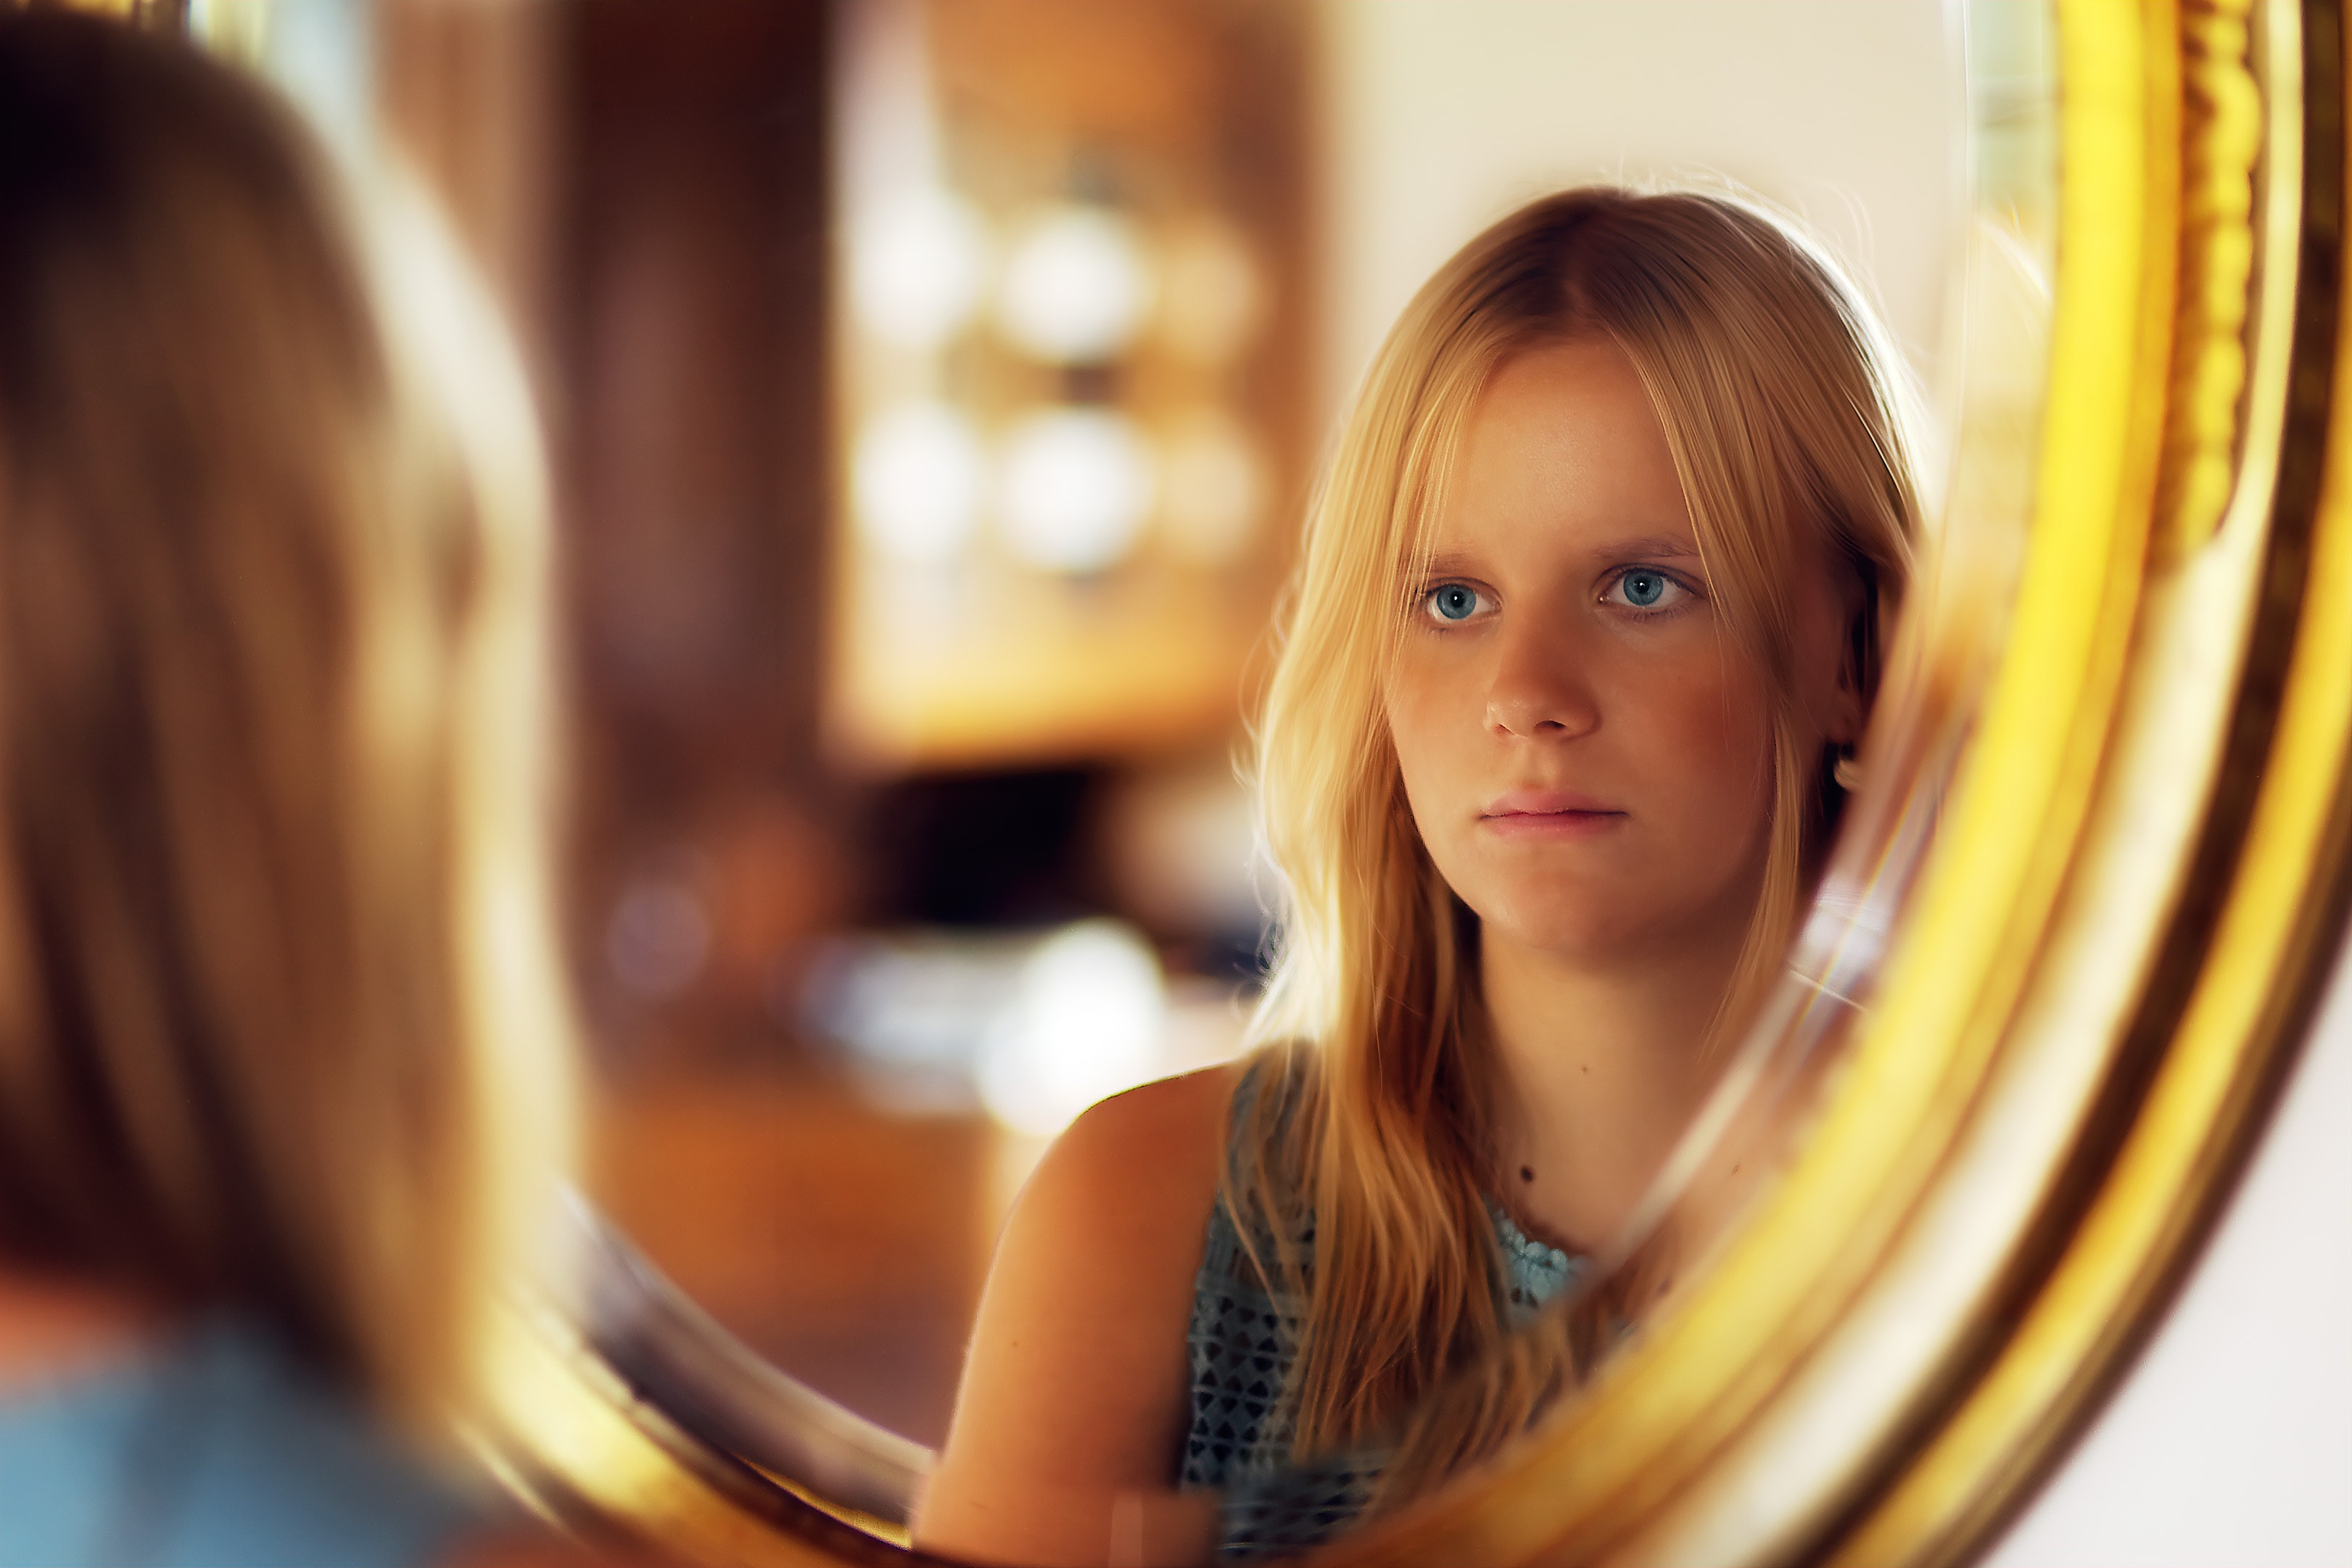 Learn where low self-esteem can come from